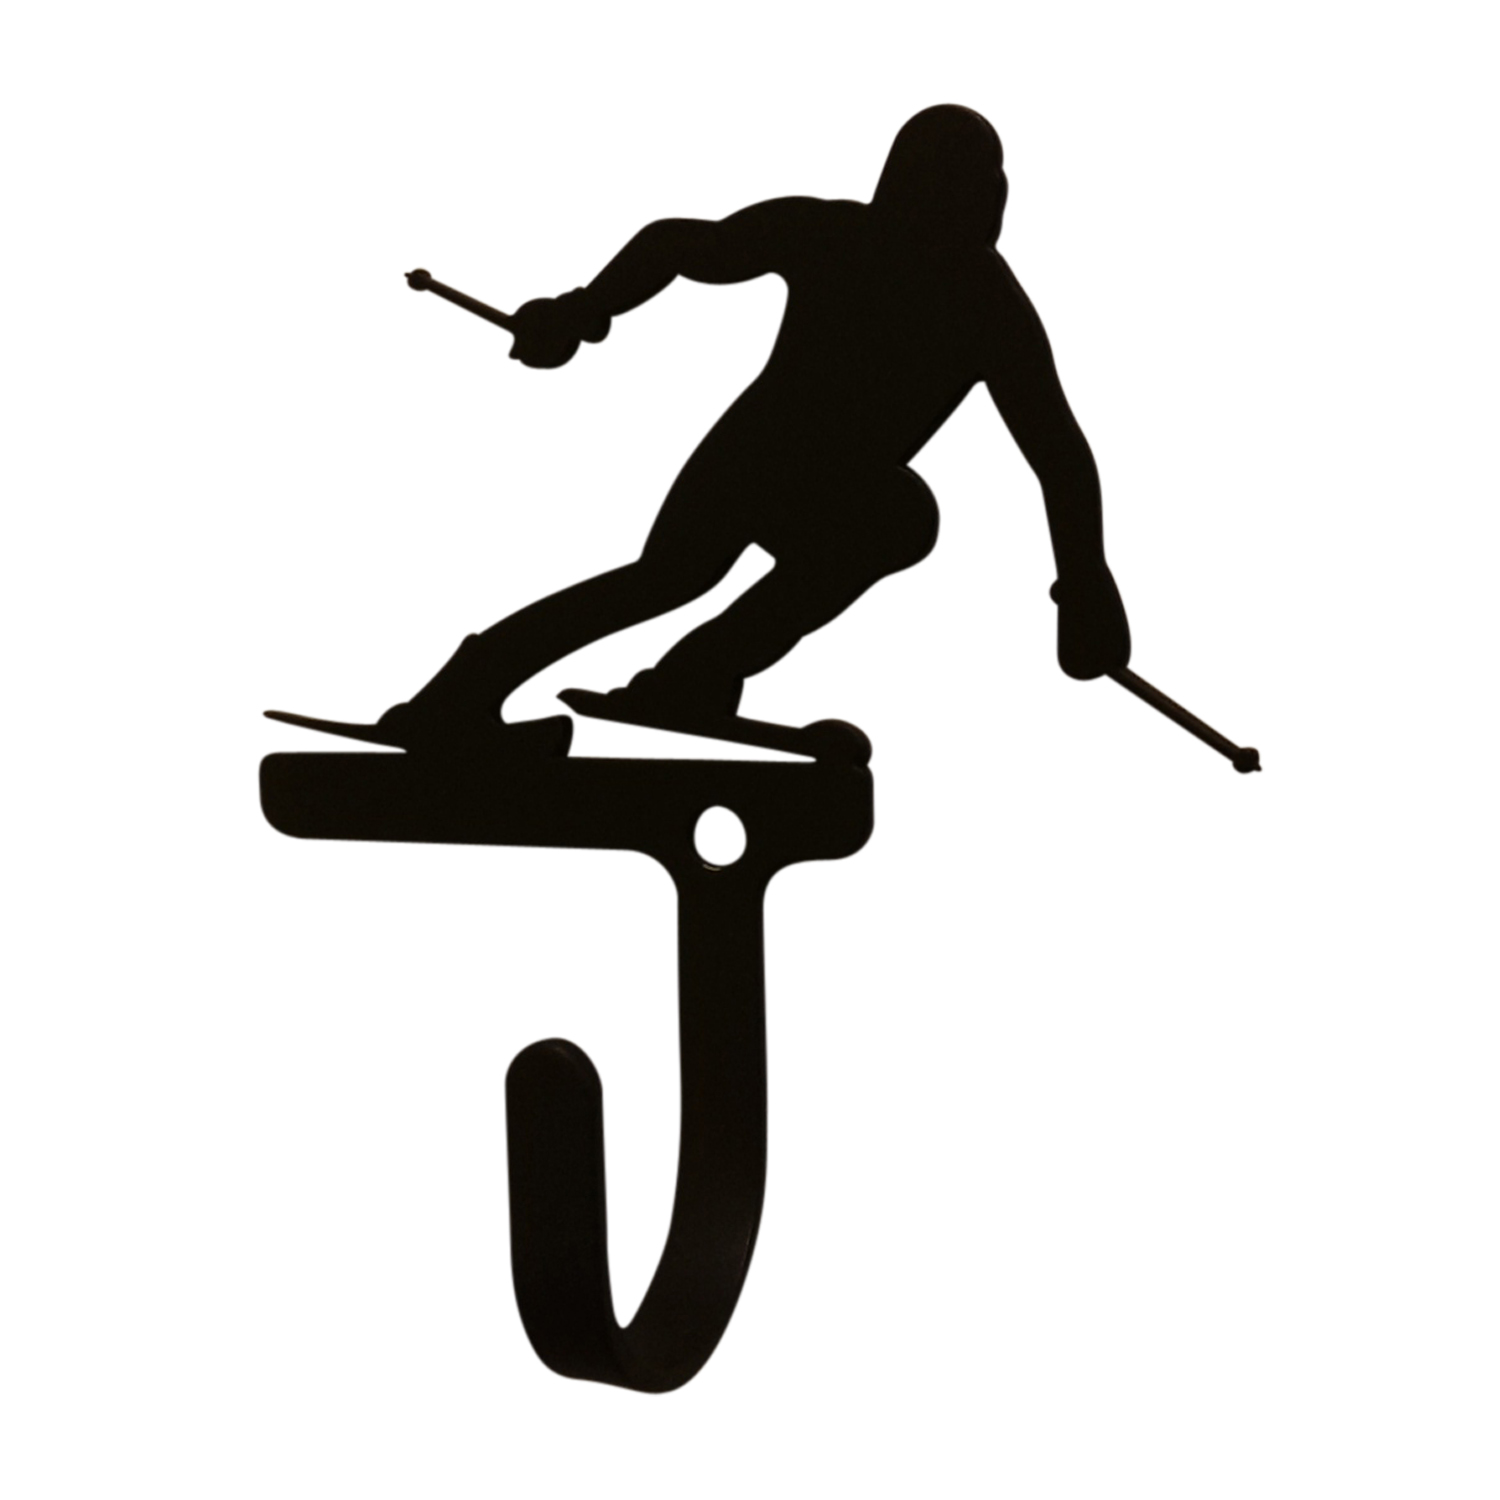 NEW - Skier - Wall Hook Smal